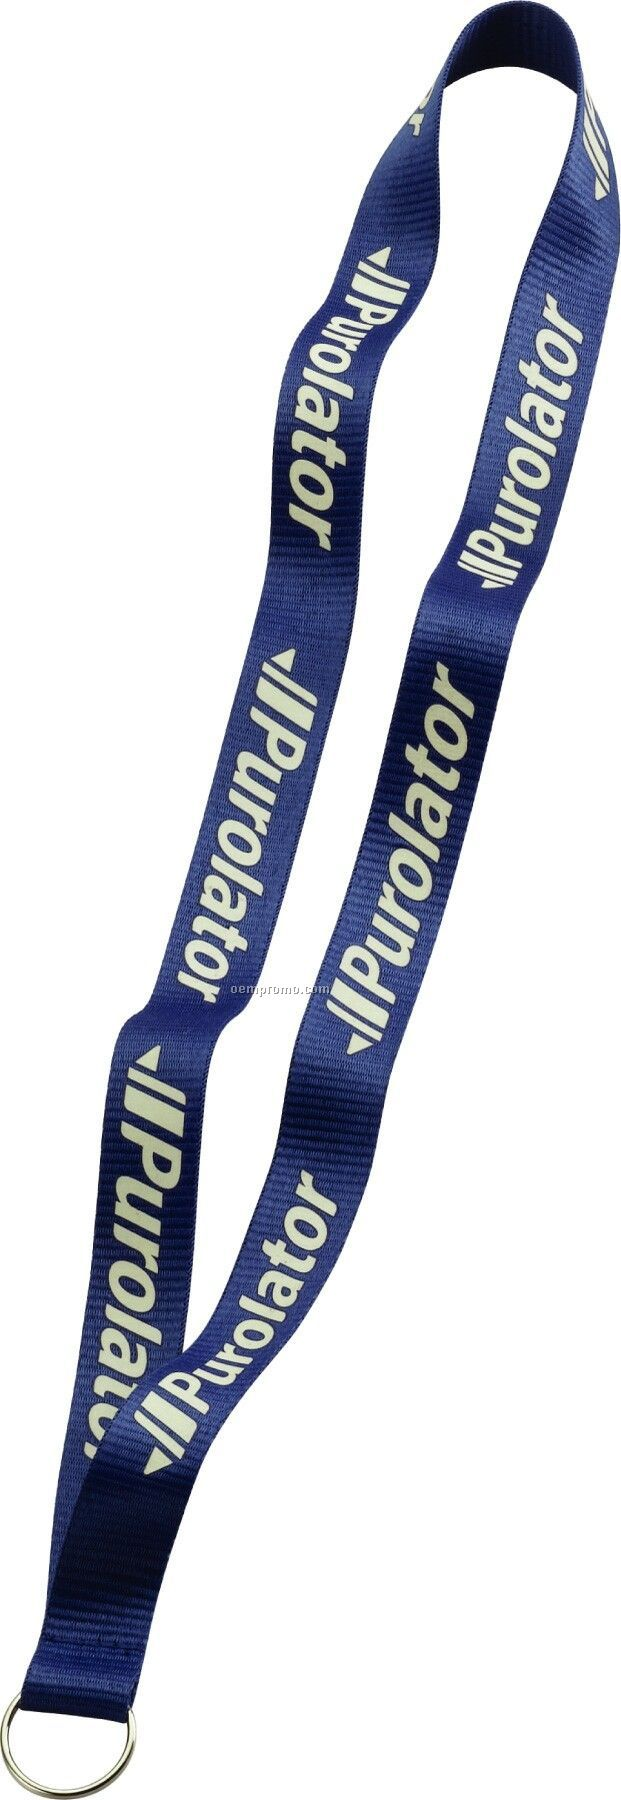 "3/4"" Imported Polyester Glow Imprint Lanyard W/ Sewn Split Ring"